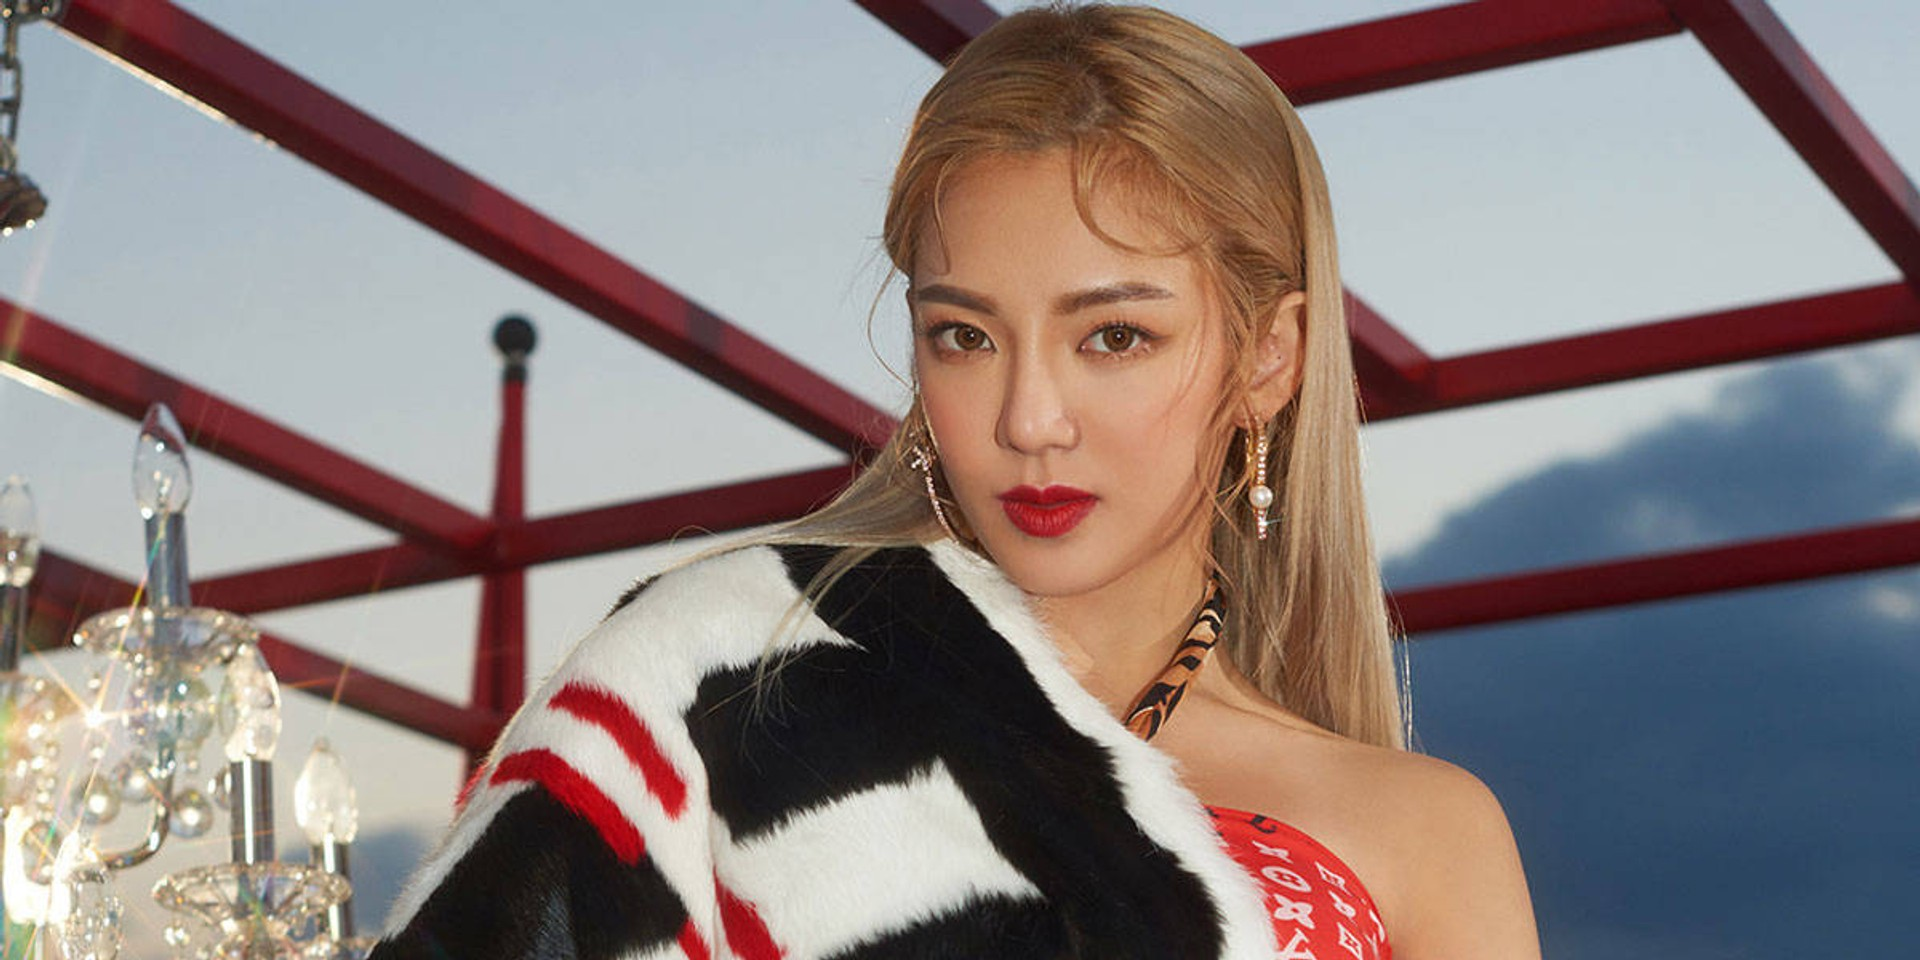 SNSD's Hyo joins Legacy Festival's line-up